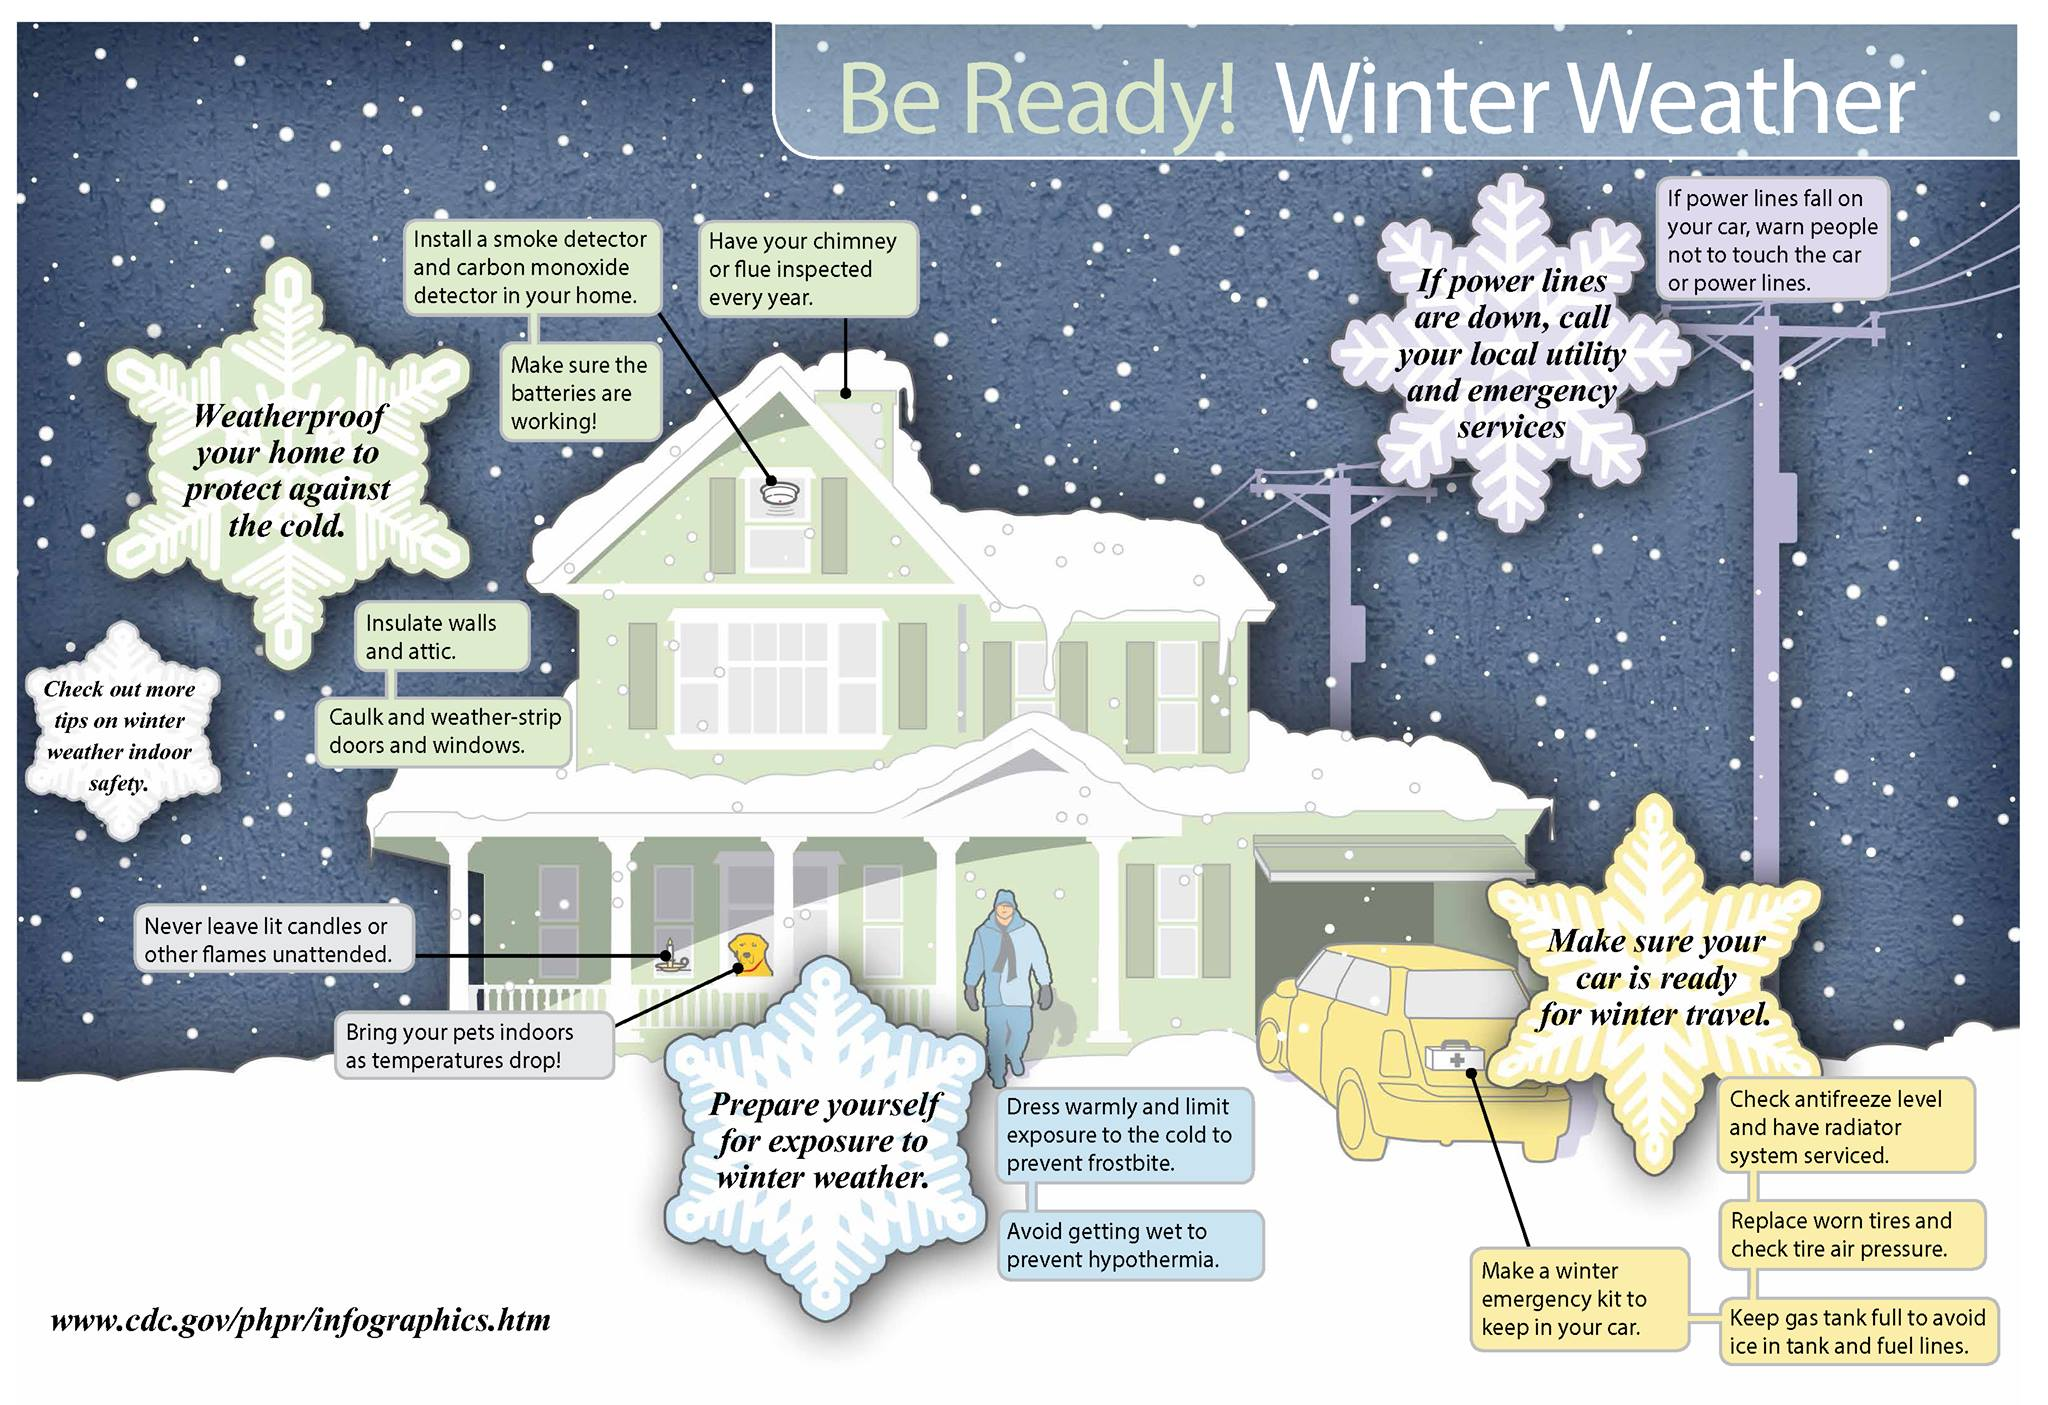 Winter Weather Tips, shared on the Newton Police Department Facebook Page.